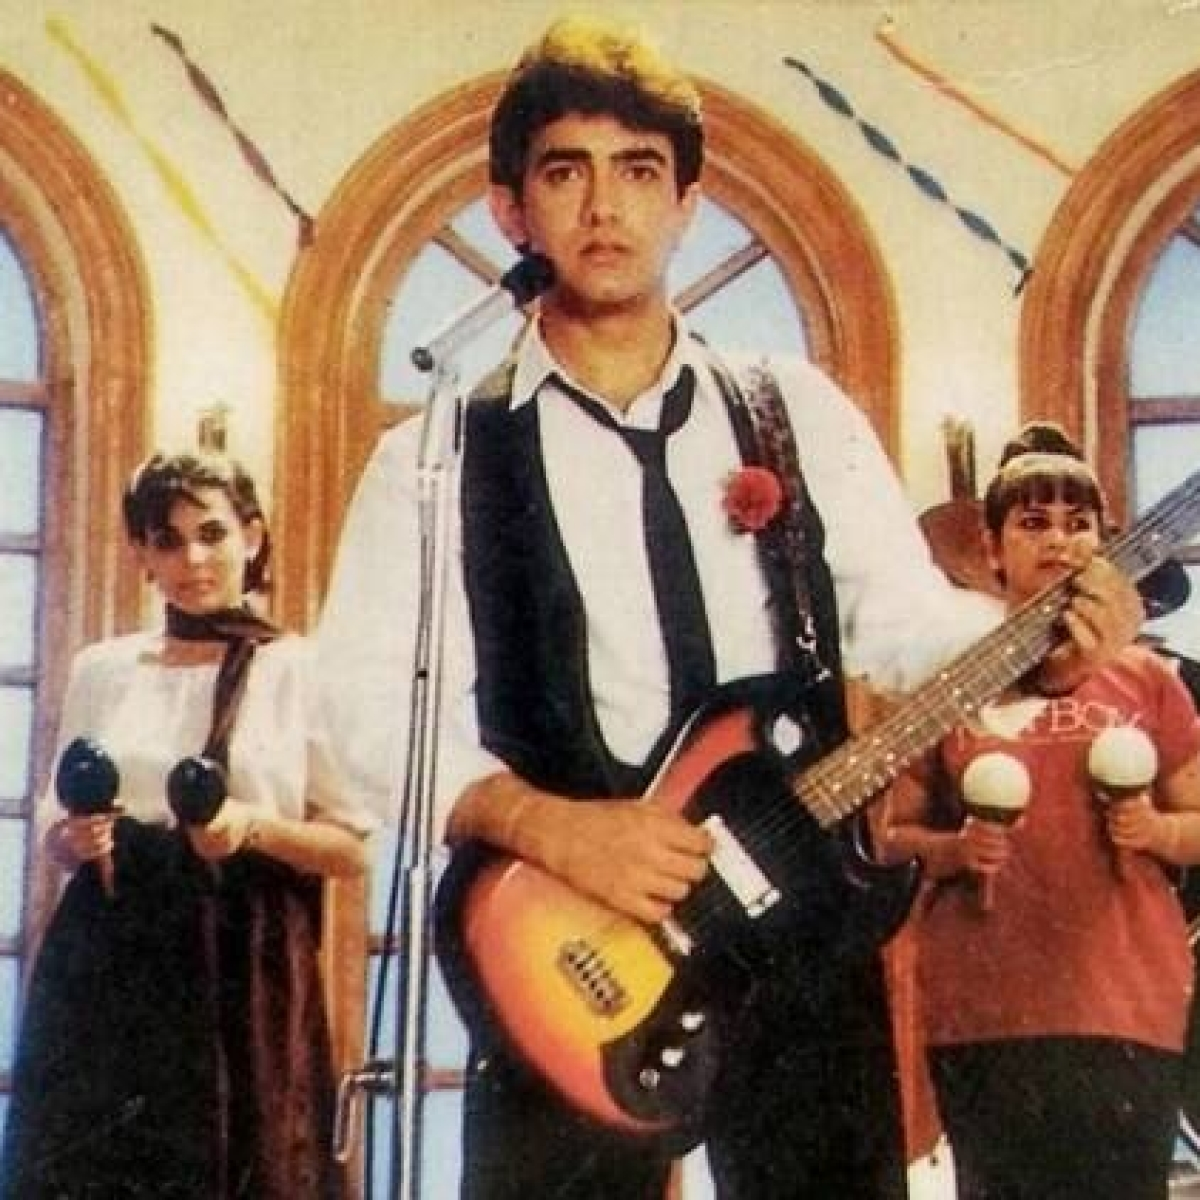 CinemaScope: On Father's Day, a look at songs about and for daddy dearest